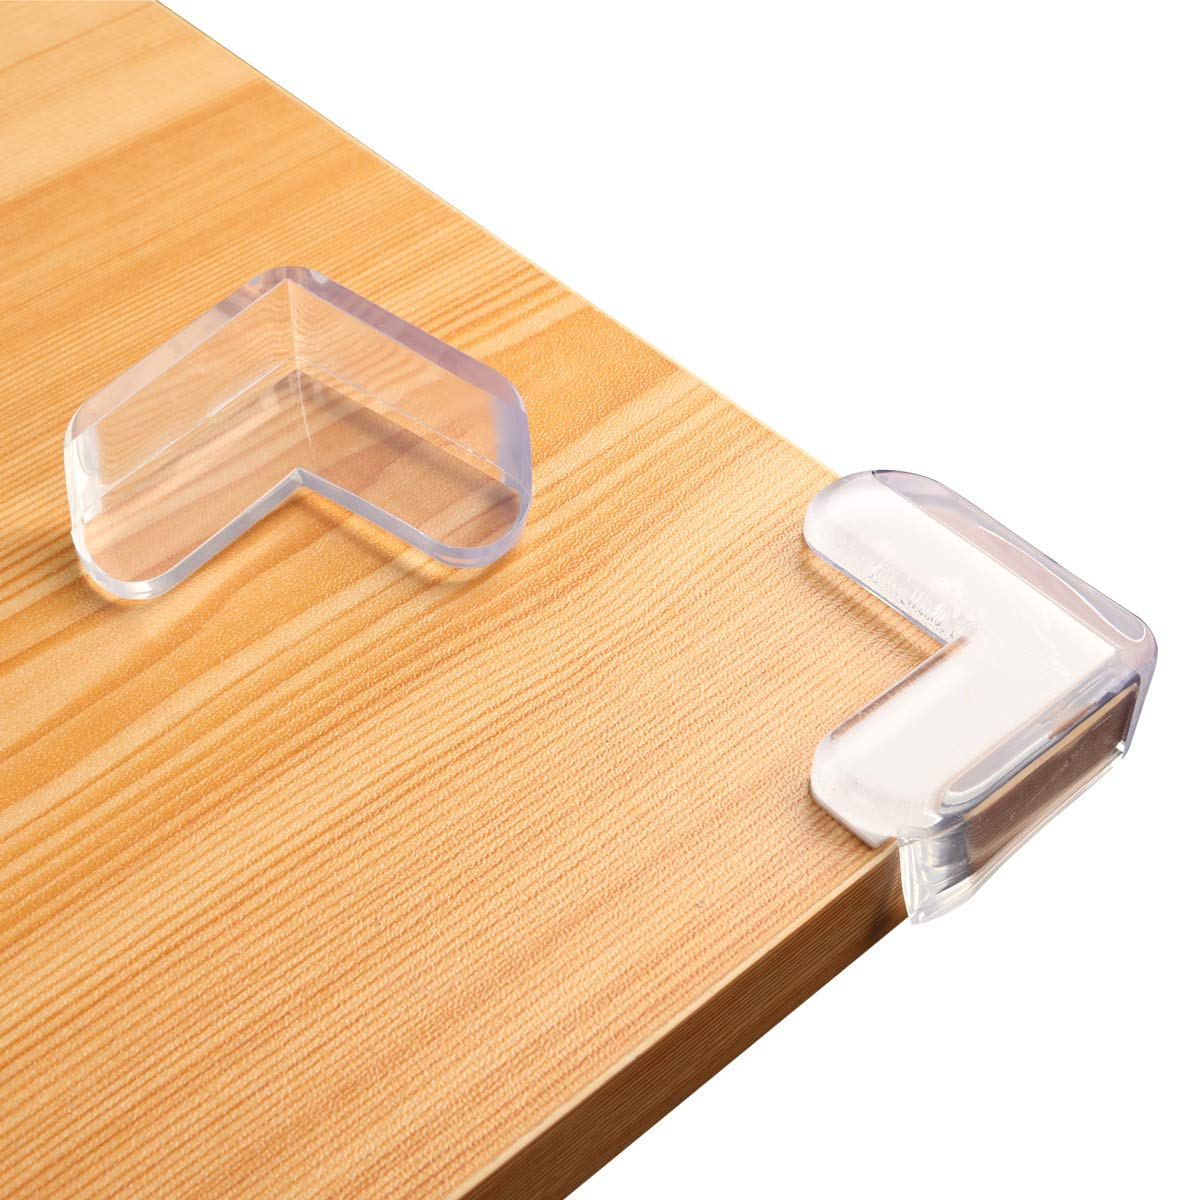 Clear Edge Bumpers with Thickened Adhesive, Corner Protector for Baby Safety from Table Corners, Keep Child Safe, Protectors for Furniture Against Sharp Corners (12 Pack)